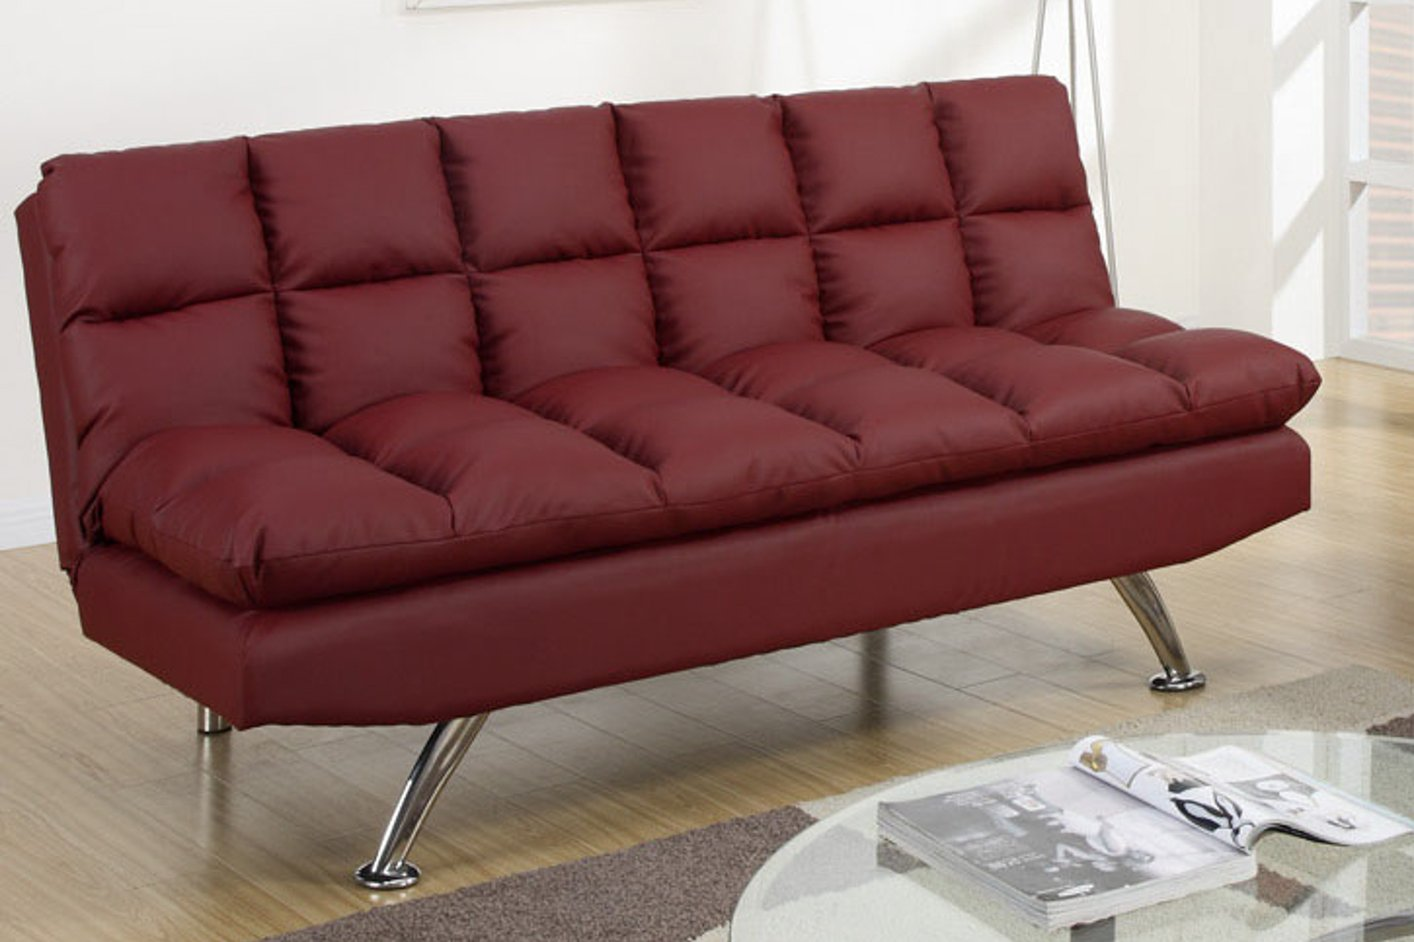 Poundex F7017 Red Twin Size Leather Sofa Bed Steal A Sofa Furniture Outlet Los Angeles Ca